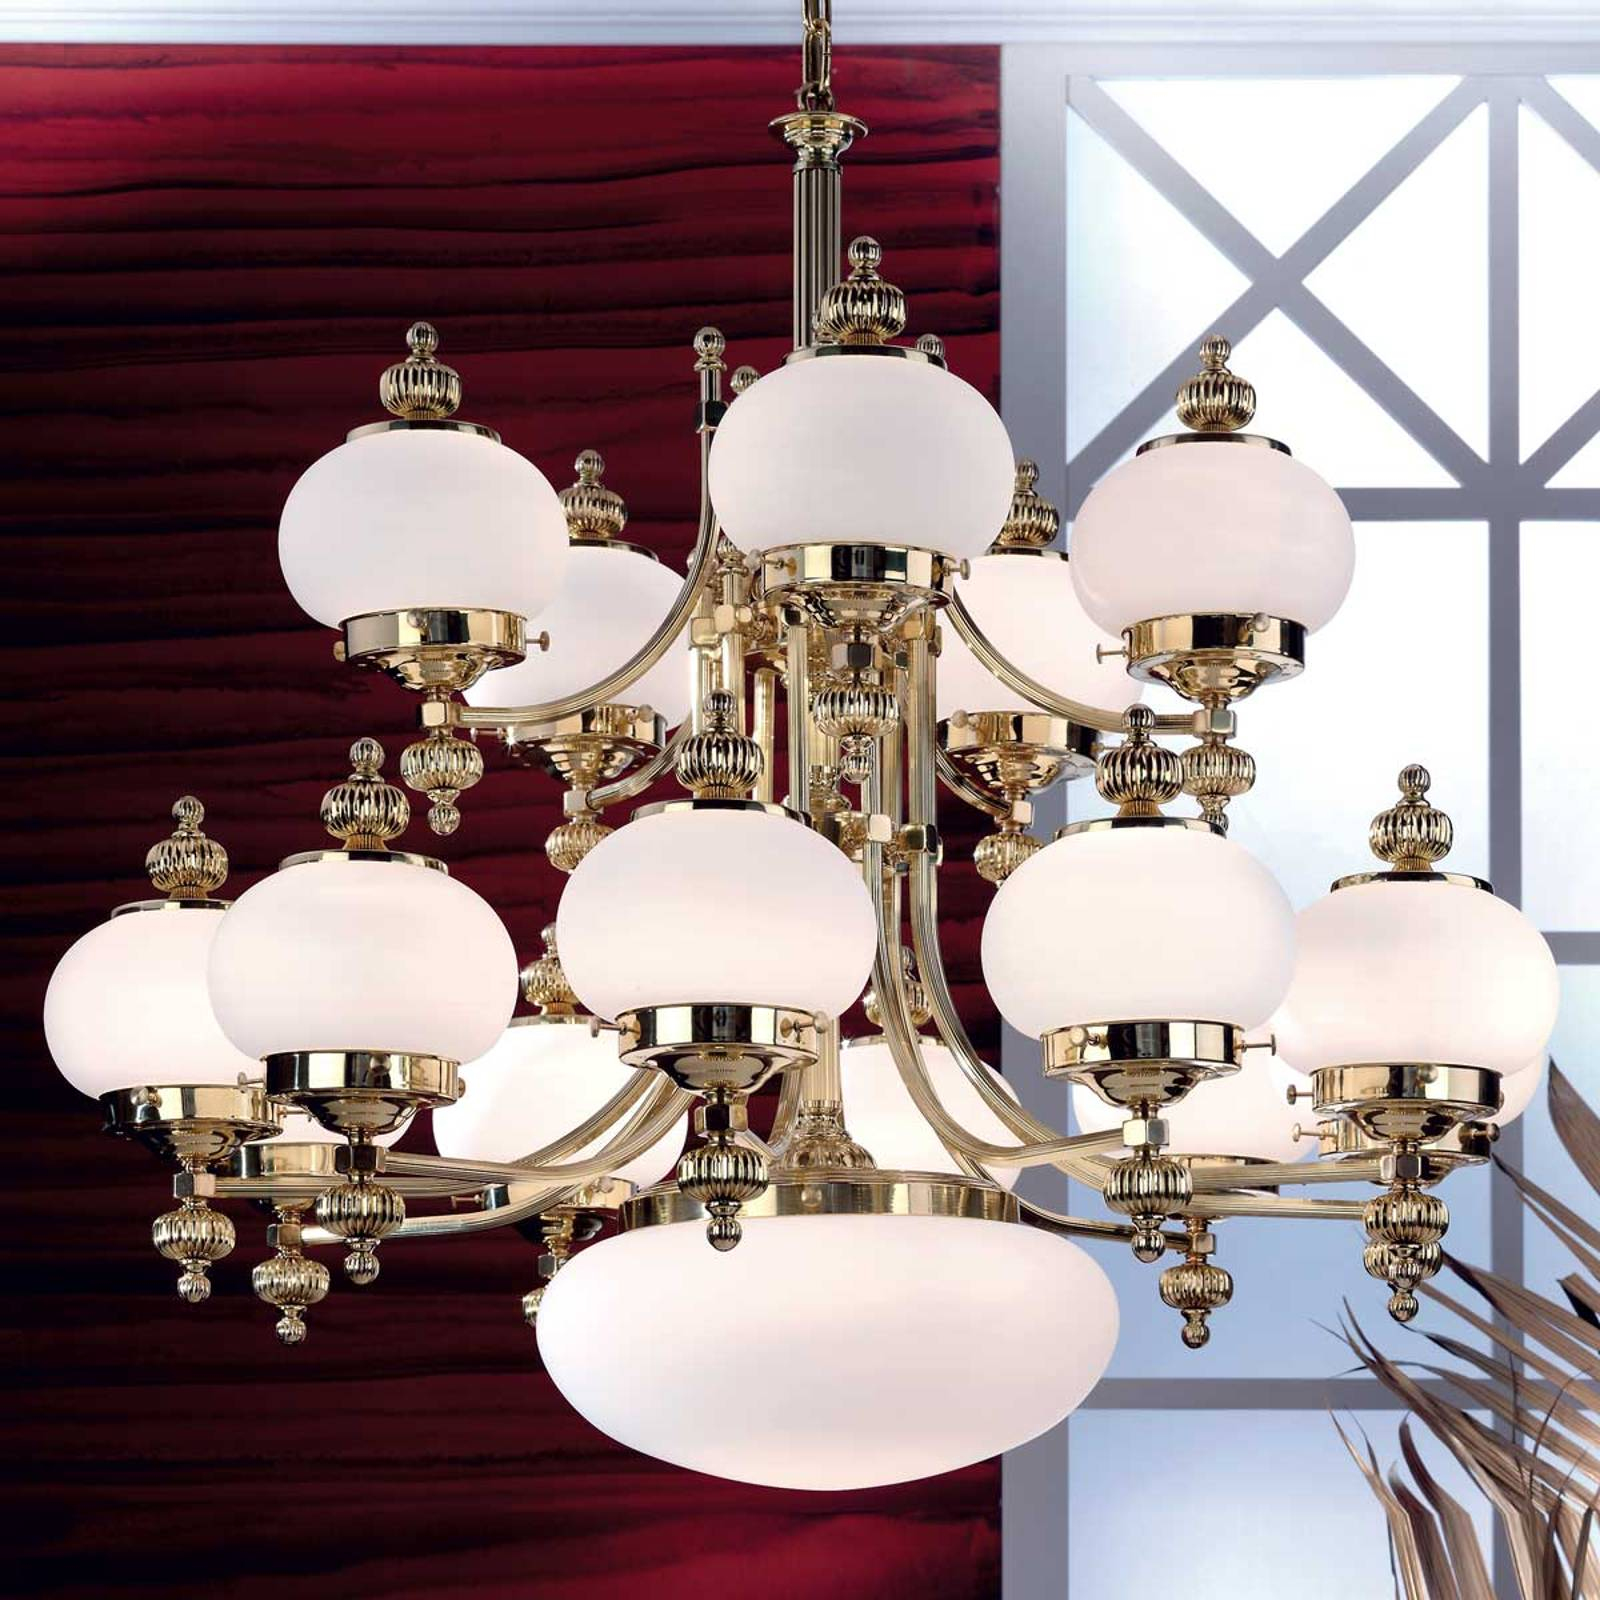 Delia Chandelier Impressive Diameter 100 cm from Orion